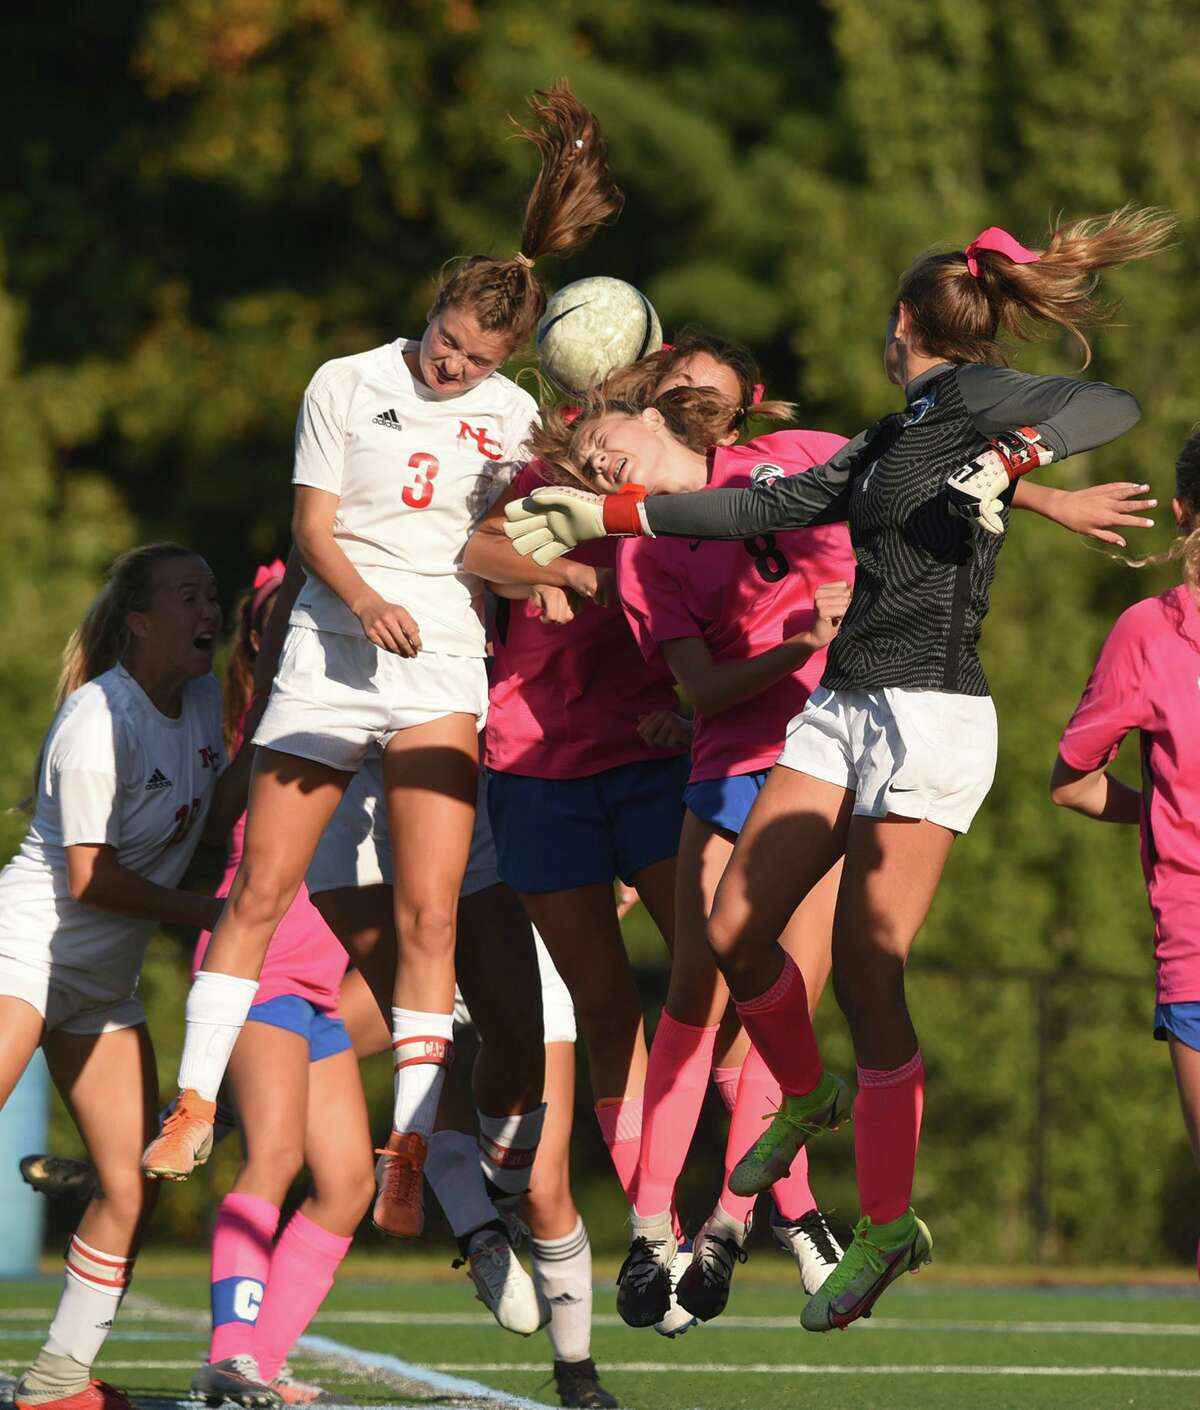 New Canaan's Dillyn Patten (3) and Darien's Caroline Aponte (8) and goalie Jillian Fox take to the air on a corner kick during a girls soccer game in Darien on Tuesday, Oct. 12, 2021.